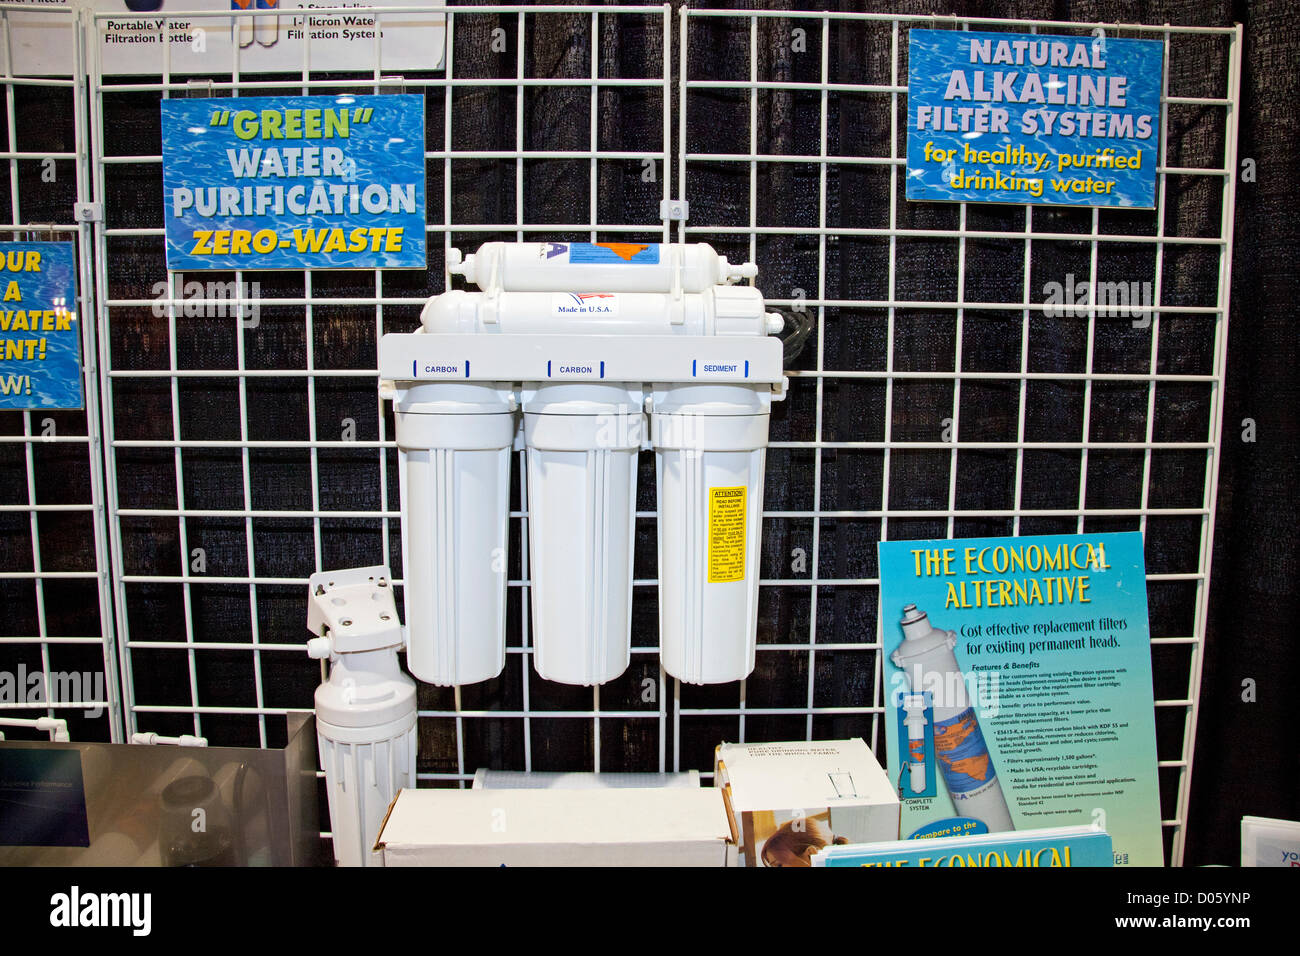 Los Angeles, California, USA. 17th November 2012. Reverse Osmosis water filtration system. The Los Angeles Green - Stock Image